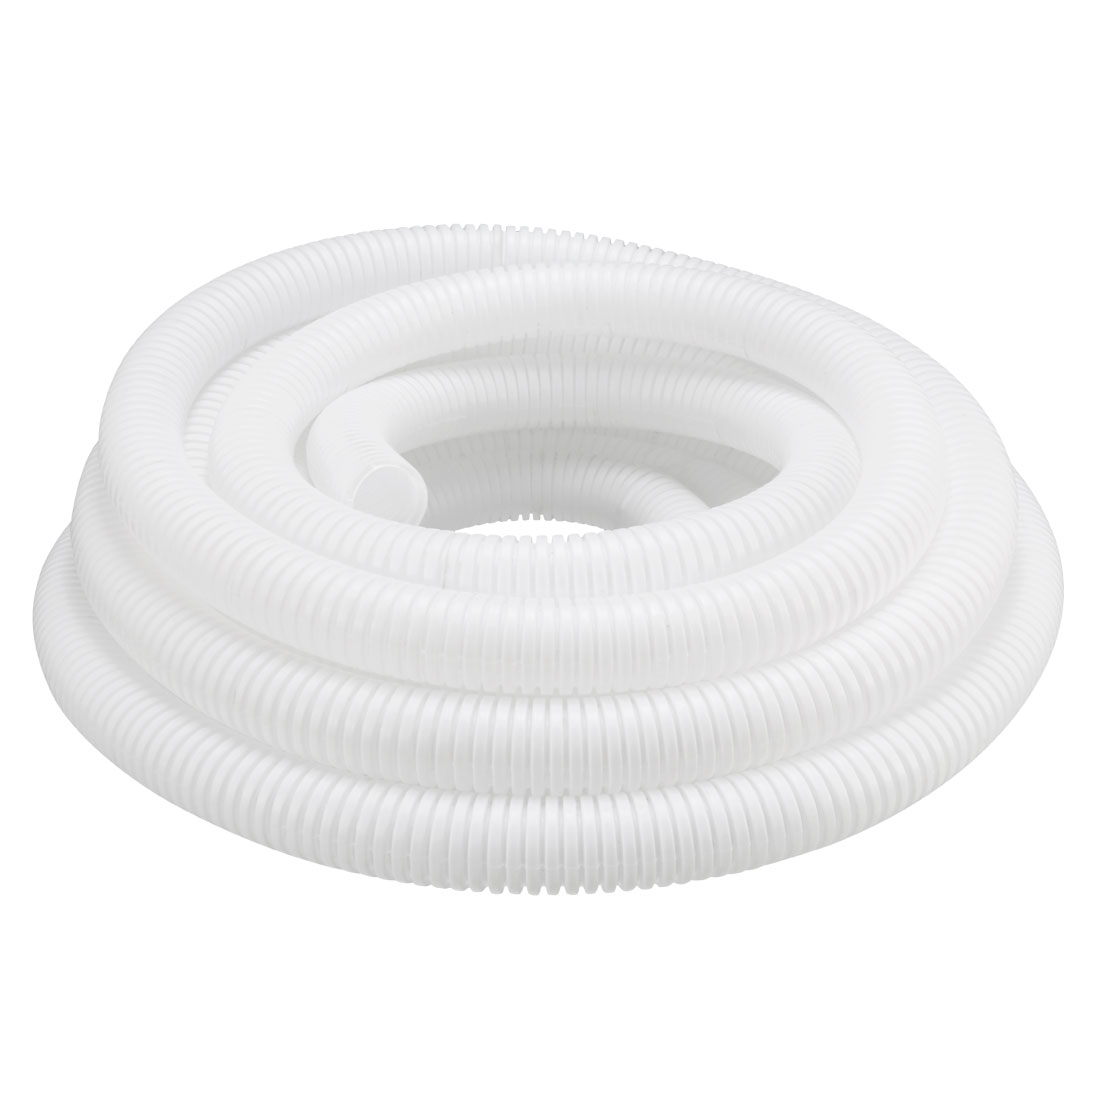 6.5M Length 25mm Dia Corrugated Bellow Conduit Tube for Electric Wiring